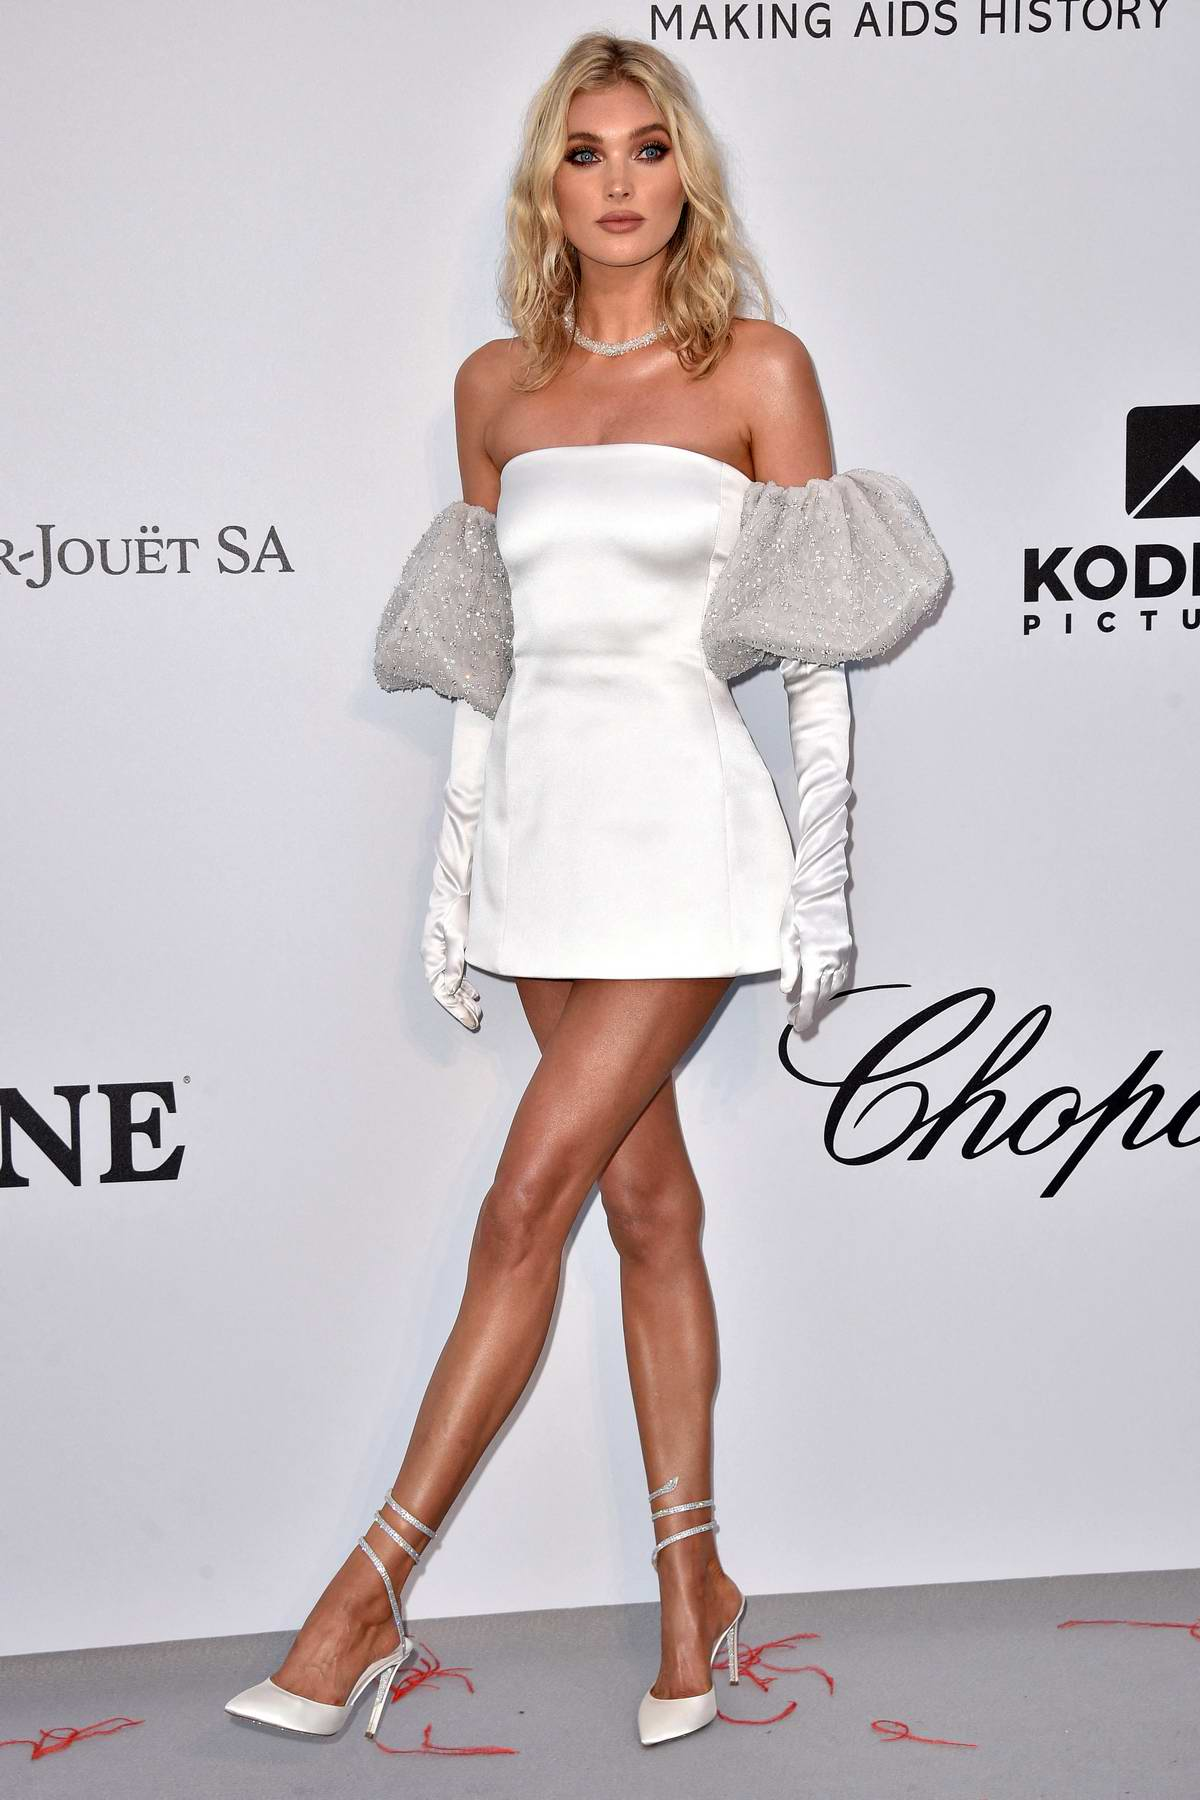 Elsa Hosk attends the 26th amfAR Gala held at Hotel du Cap-Eden-Roc during the 72nd annual Cannes Film Festival in Cannes, France